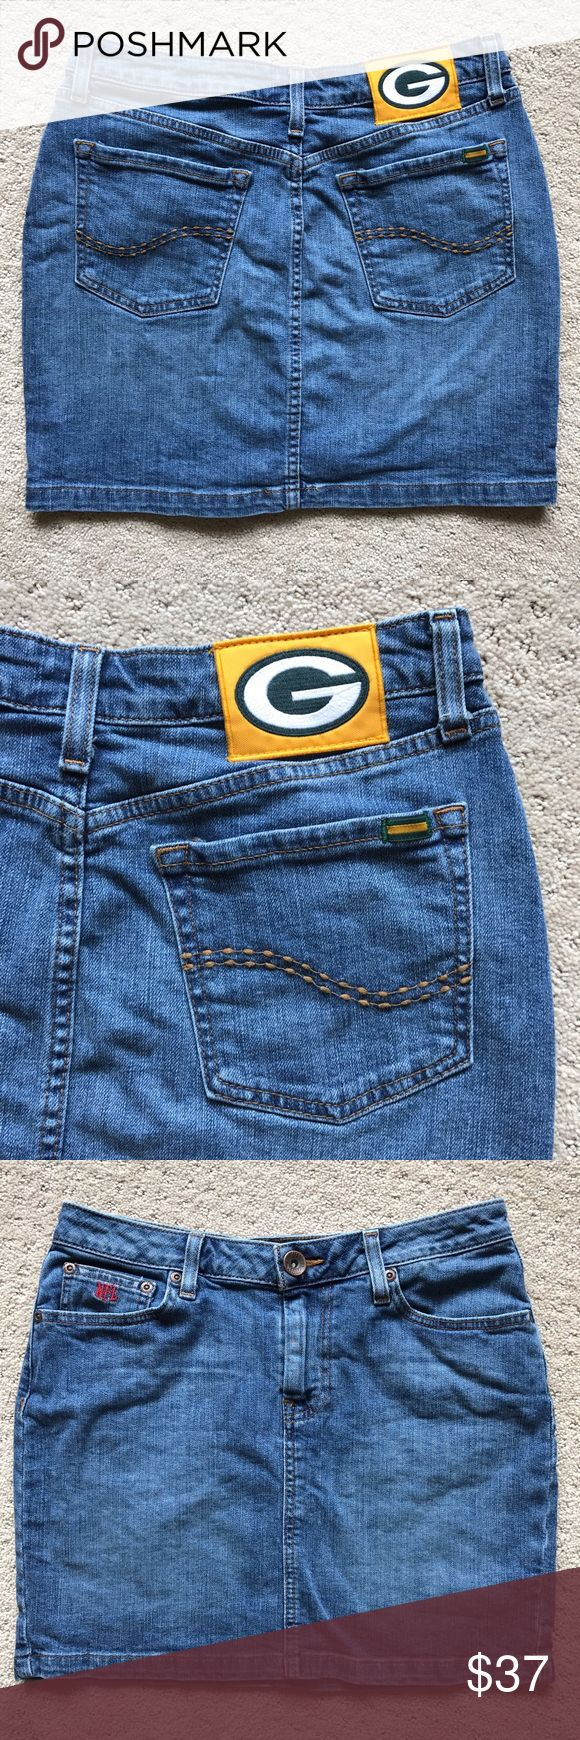 Green Bay Packers NFL Blitz Skirt by Team Apparel This Green Bay Packers skirt is in excellent used condition and a must have for any Packer fan!  NFL Blitz Mini by Team Apparel.  Denim with a GB Packers patch on the back. Embroidered NFL on the pocket.  Size 6.  Waist flat 14.5.  Length from top to bottom 15.  98 cotton, 2 spandex.  From a smoke free, pet friendly home. NFL Team Apparel Skirts Mini